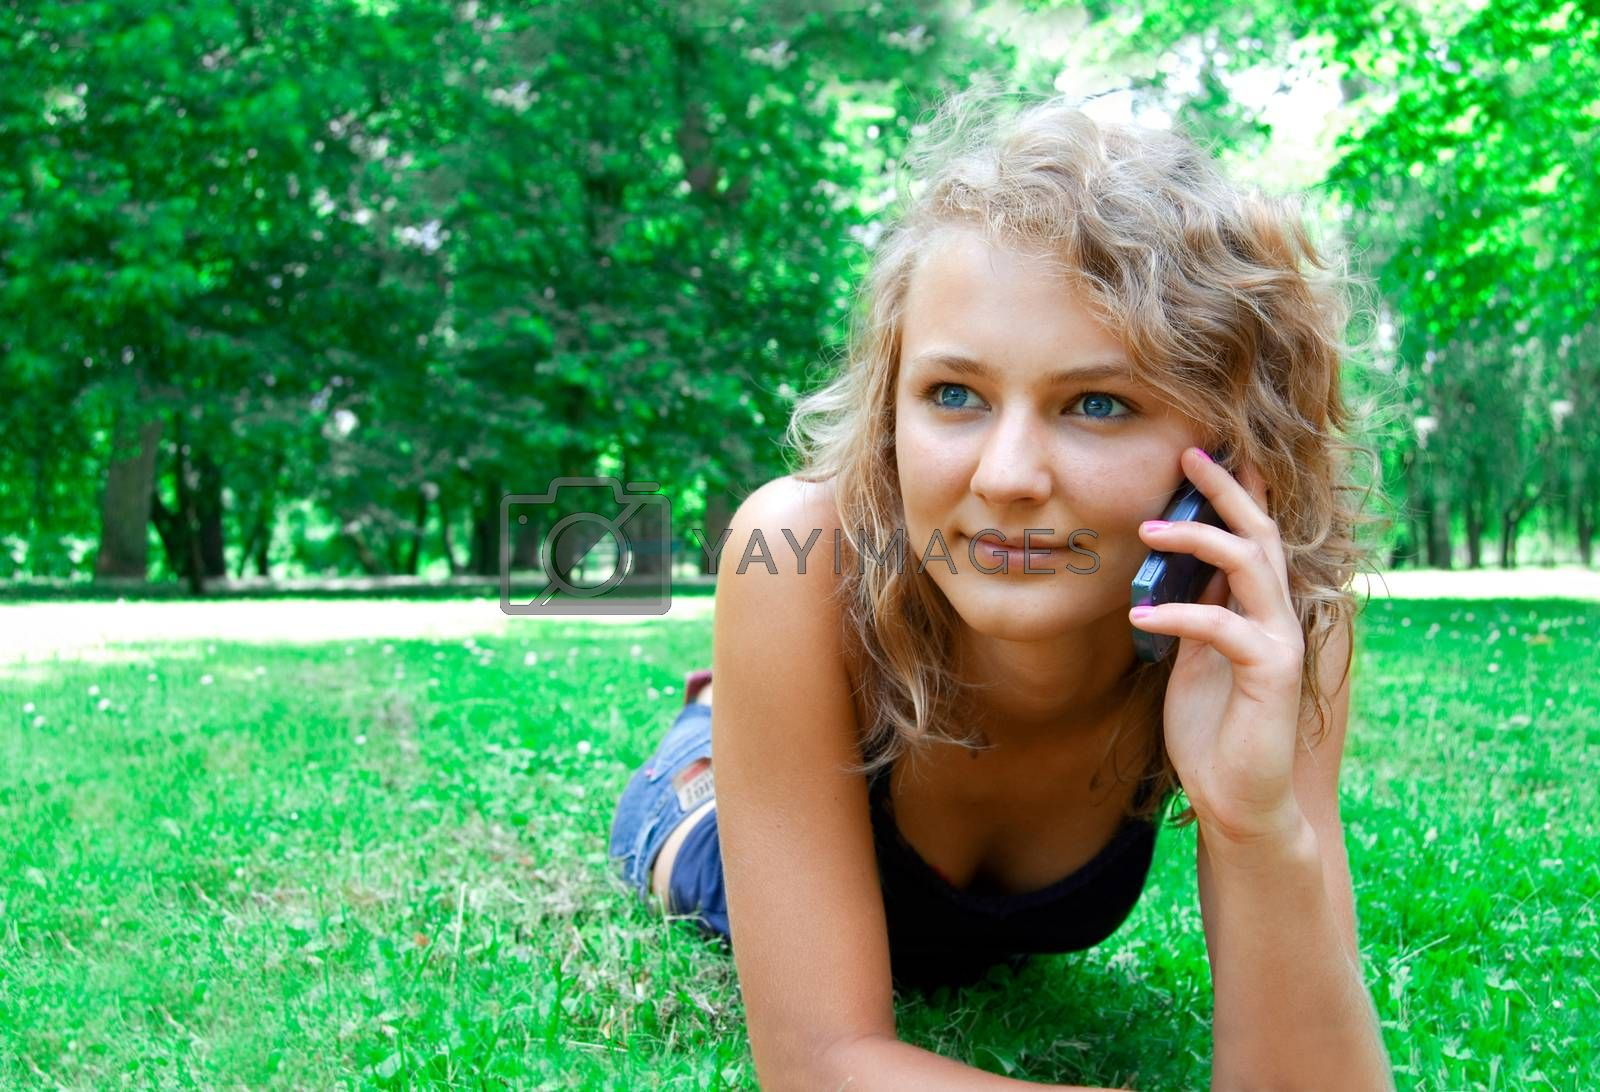 Communication conceptual image. Young beautiful girl talking on a cell phone.